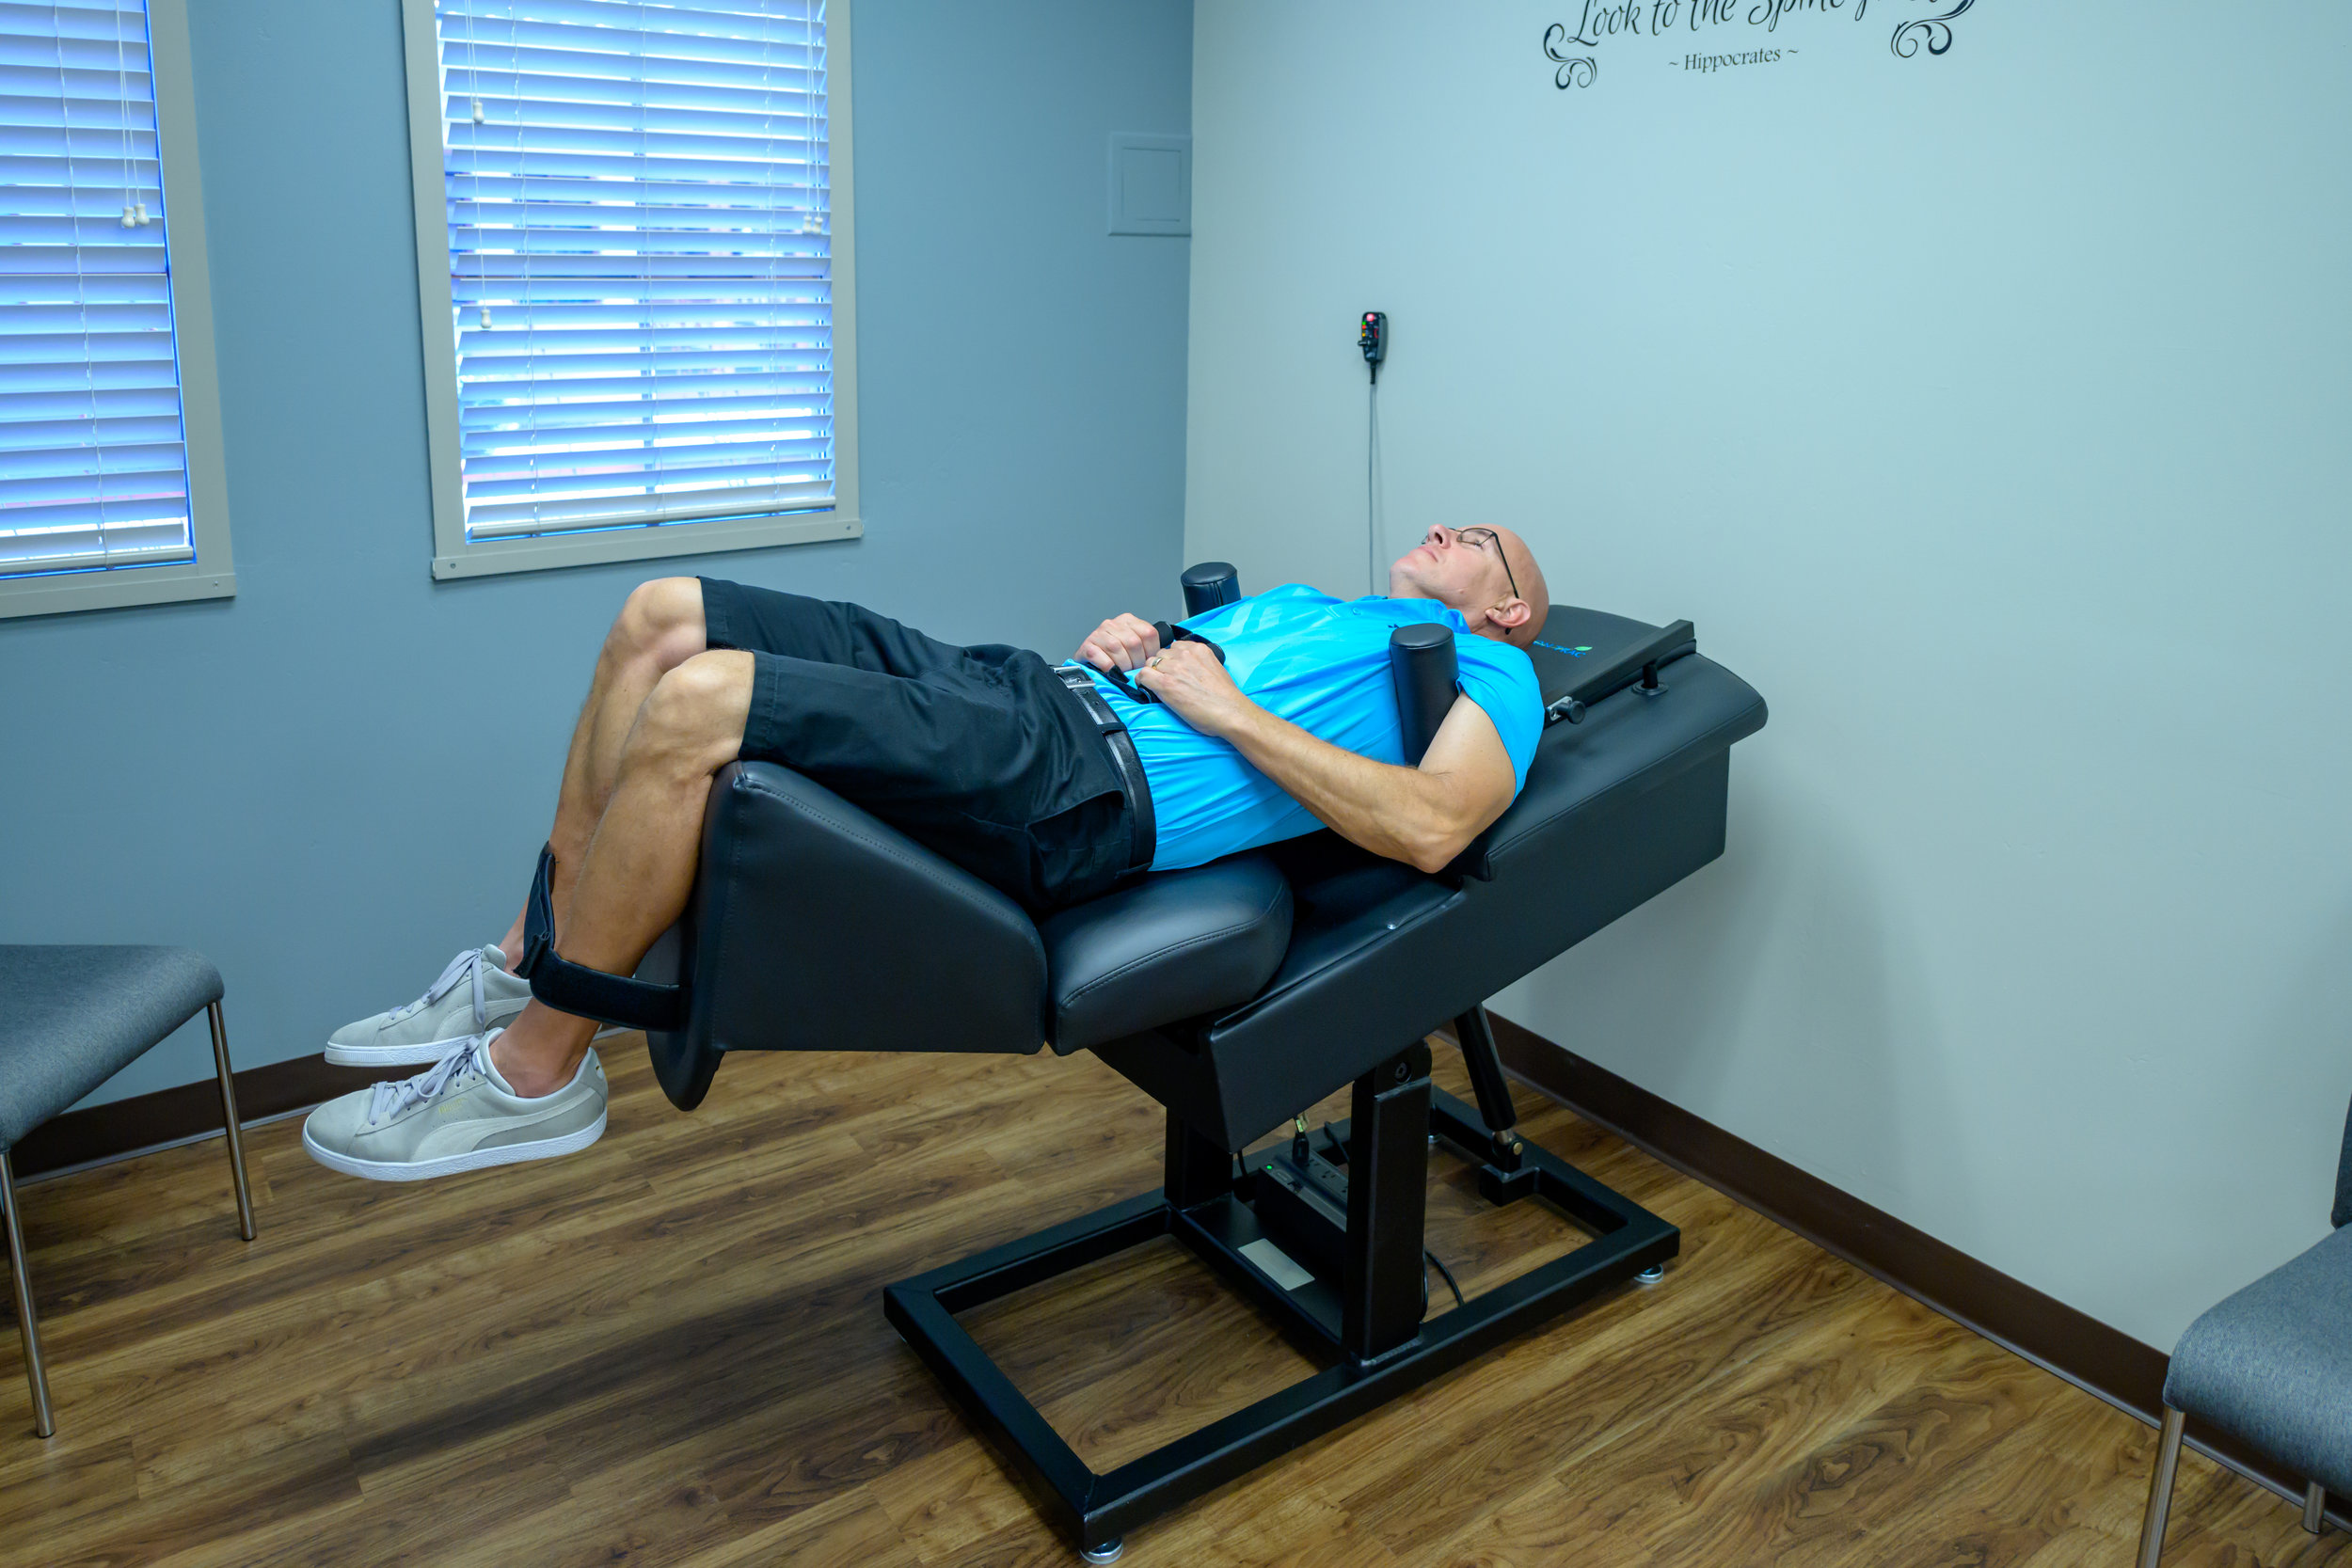 MECHANICAL TRACTION - Mechanical traction, which involves gentle and precise stretching of the spine, may be used to reduce pressure on joints and discs of the spine. This is often helpful for patients with disc bulges or herniations, pinched nerves, sciatica and degenerative disc disease to name a few.